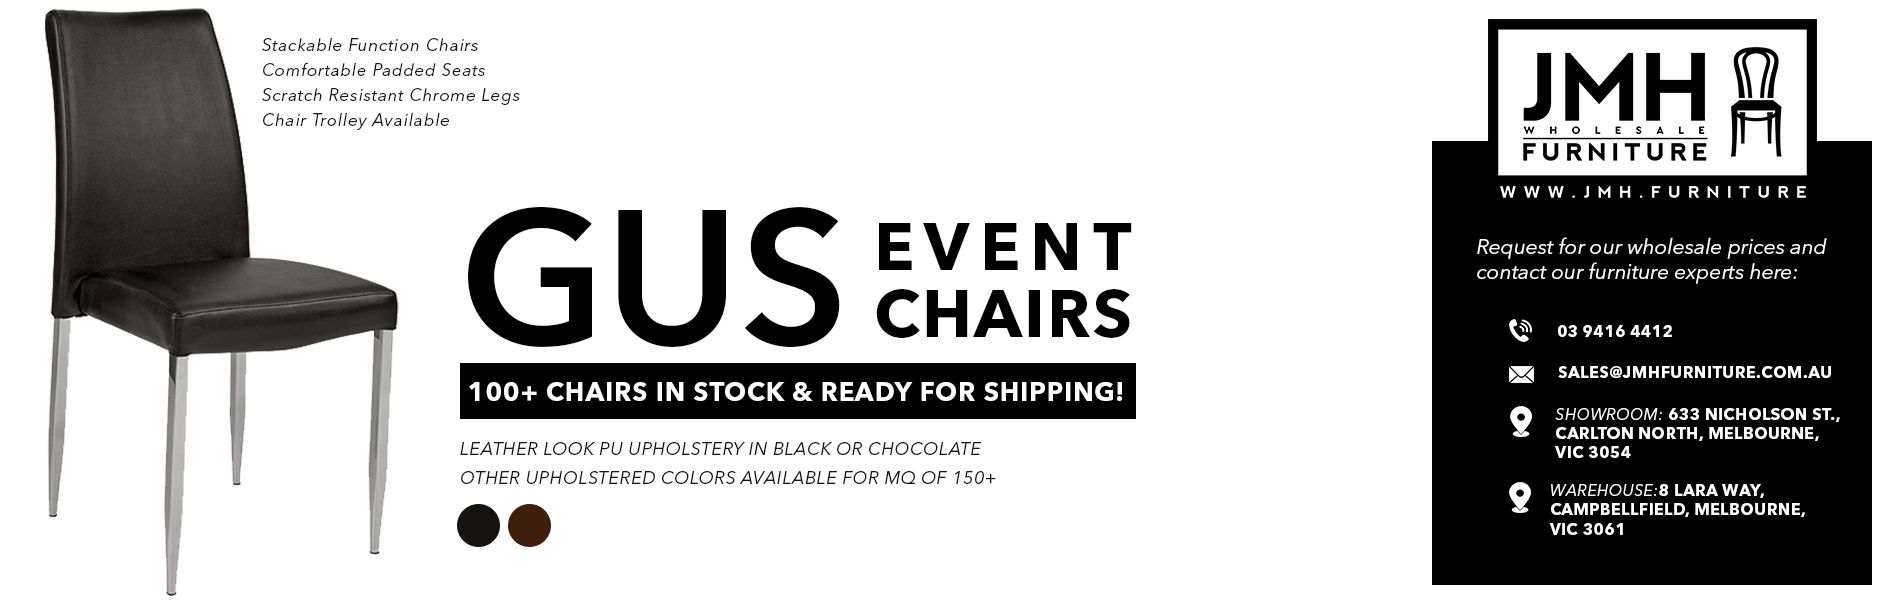 event furniture purchase